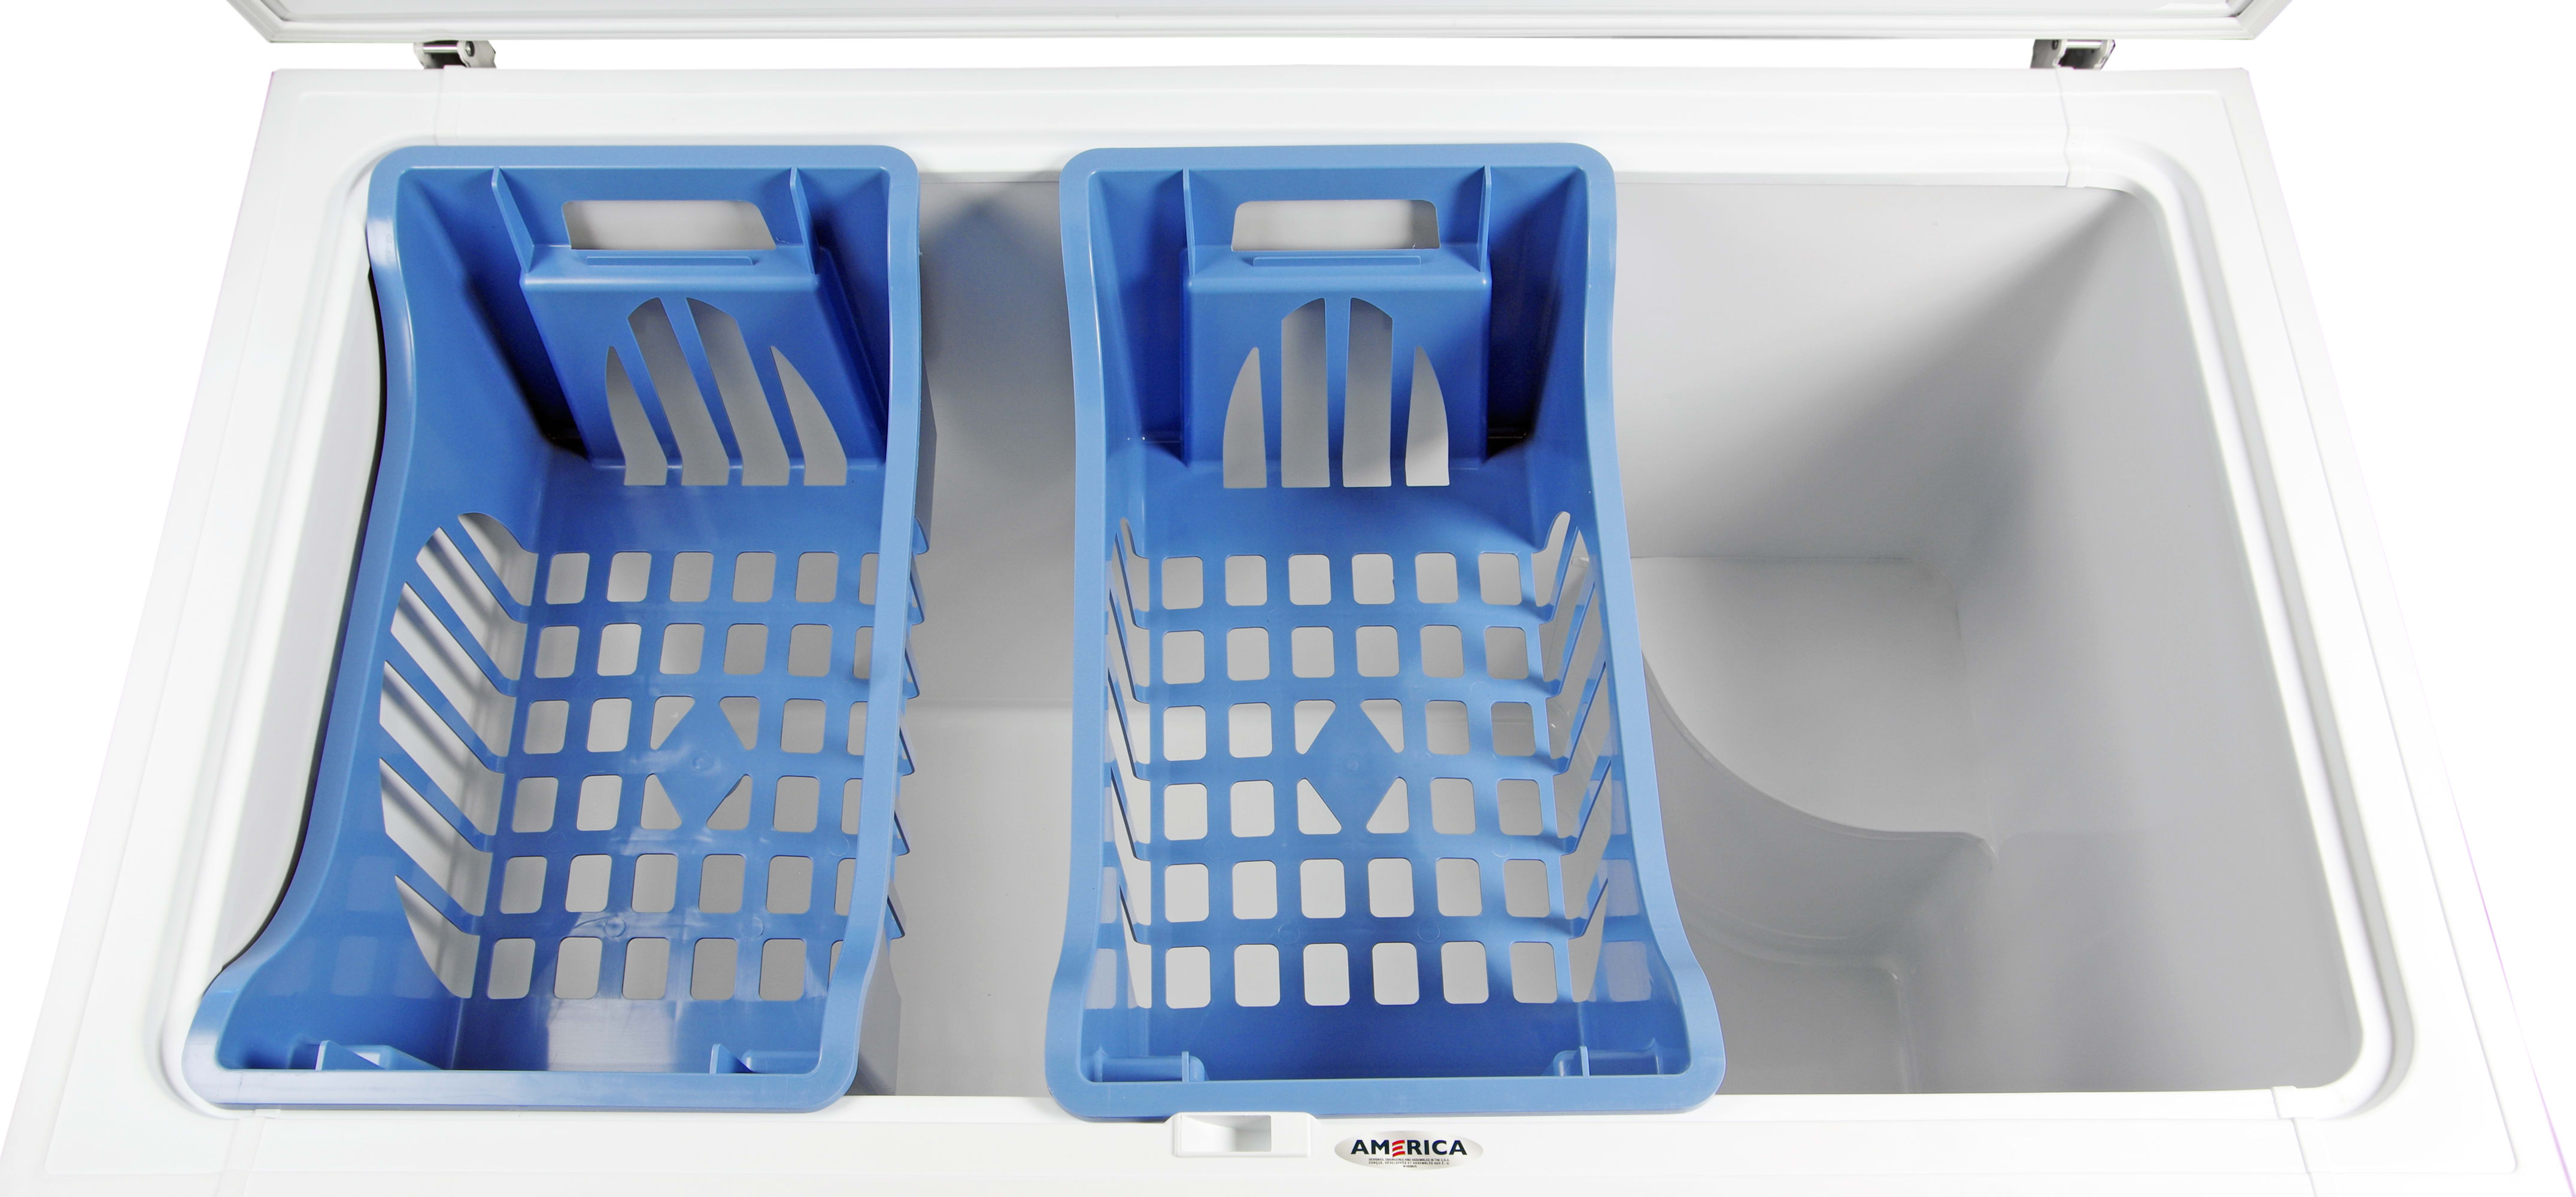 The two blue bins up top are all the organizational help you're going to get from the Whirlpool EH151FXTQ.